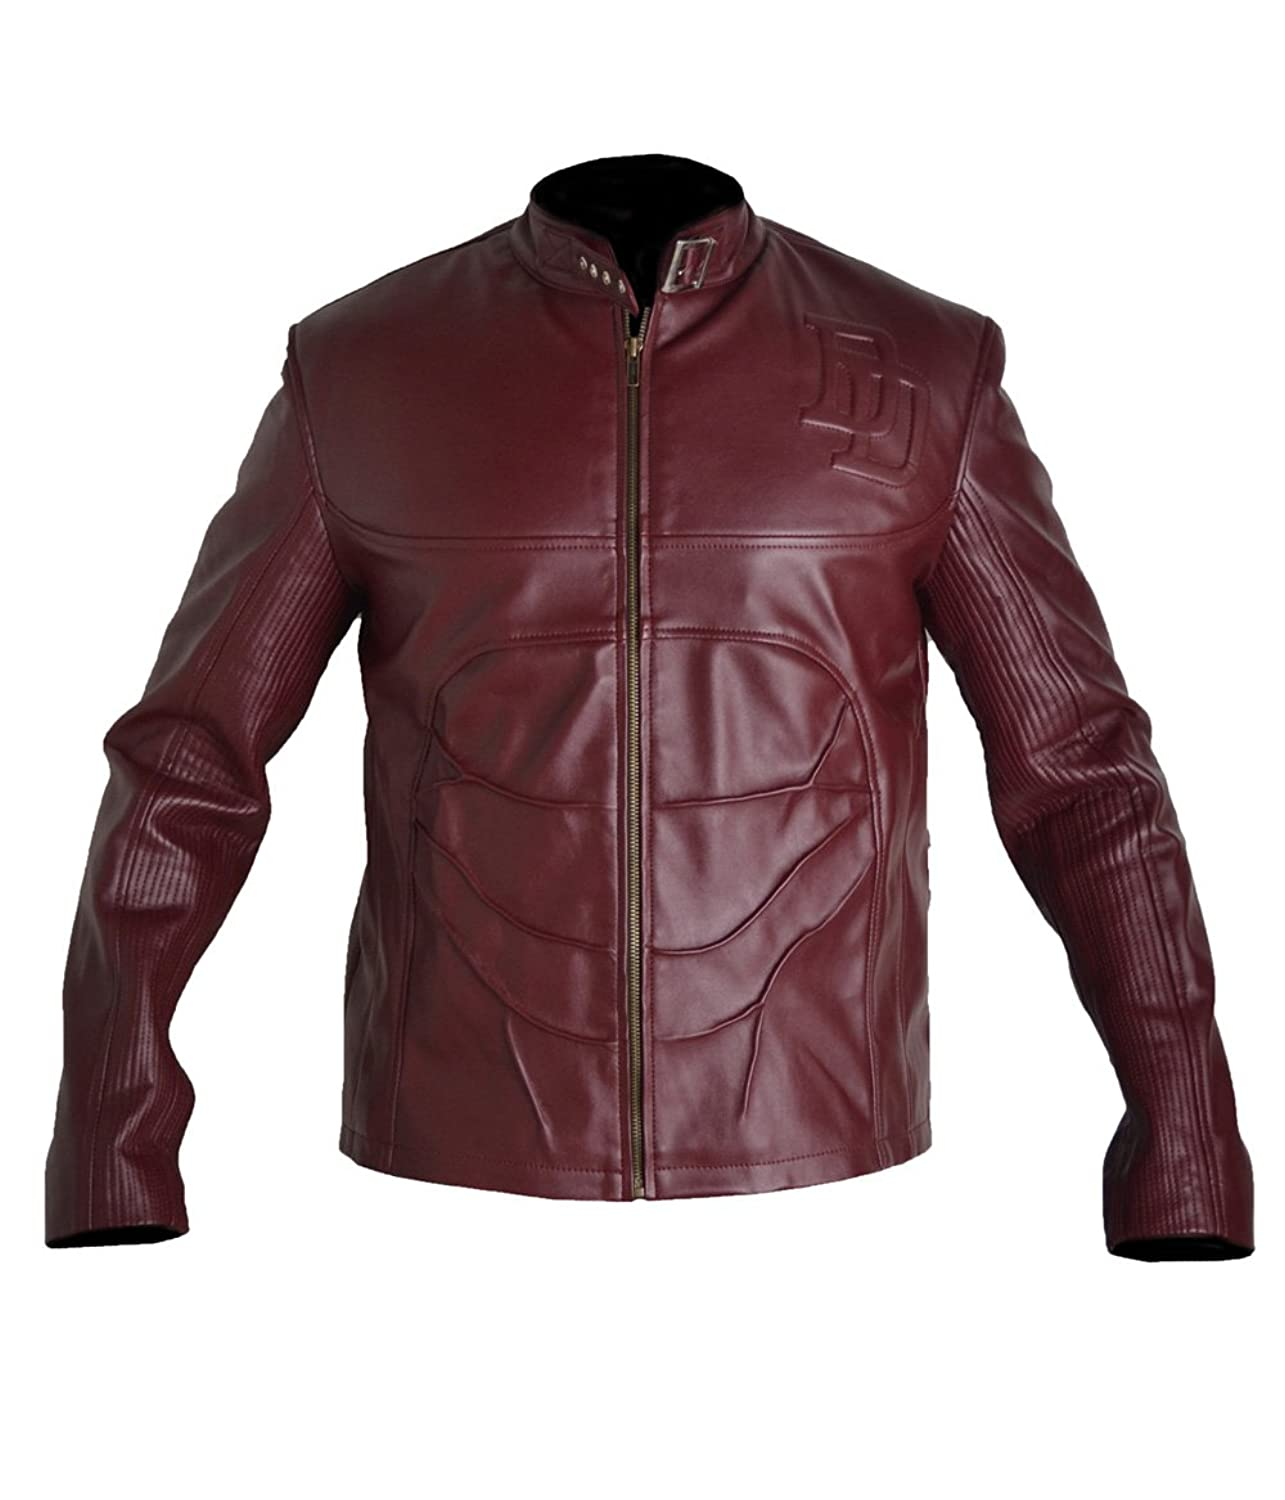 Classyak Men's Real Leather Daredevil fashion Jacket